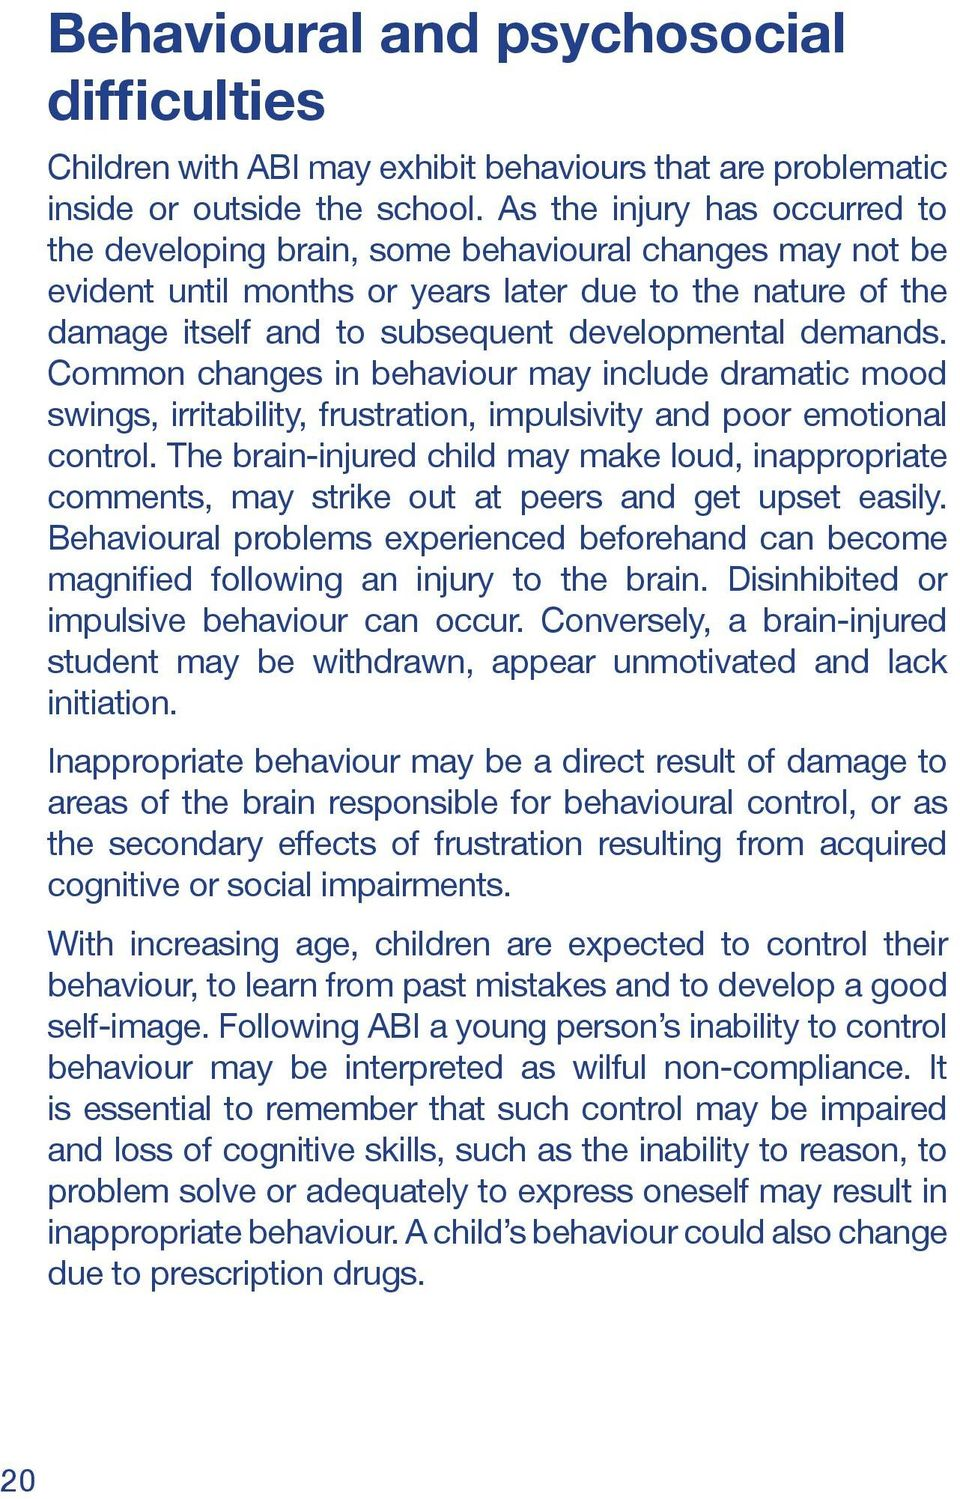 demands. Common changes in behaviour may include dramatic mood swings, irritability, frustration, impulsivity and poor emotional control.